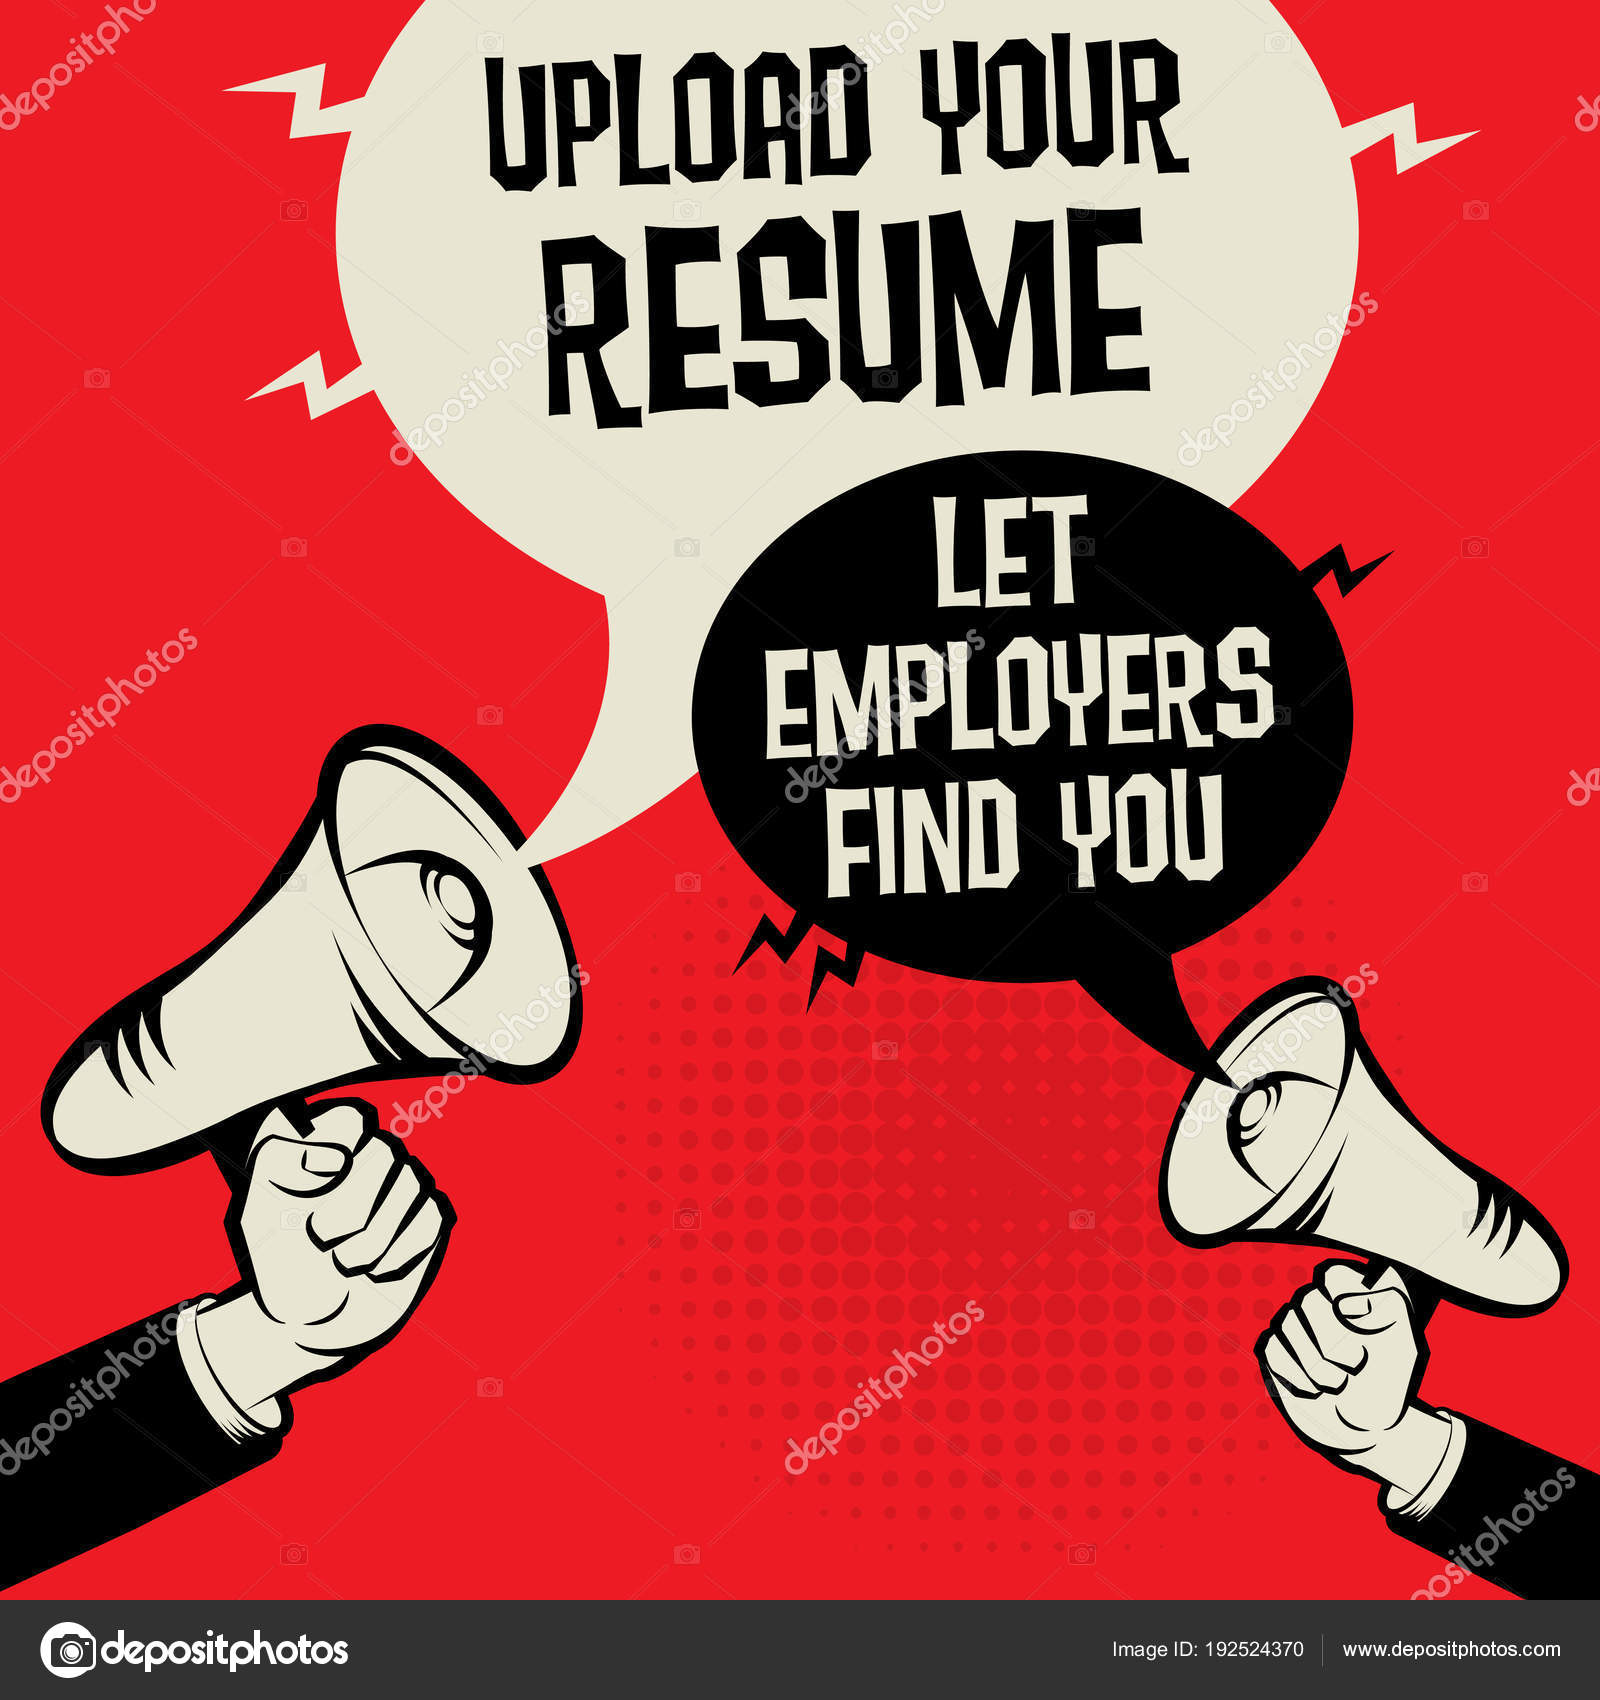 Upload Your Resume Let Employers Find You Stock Vector Fla